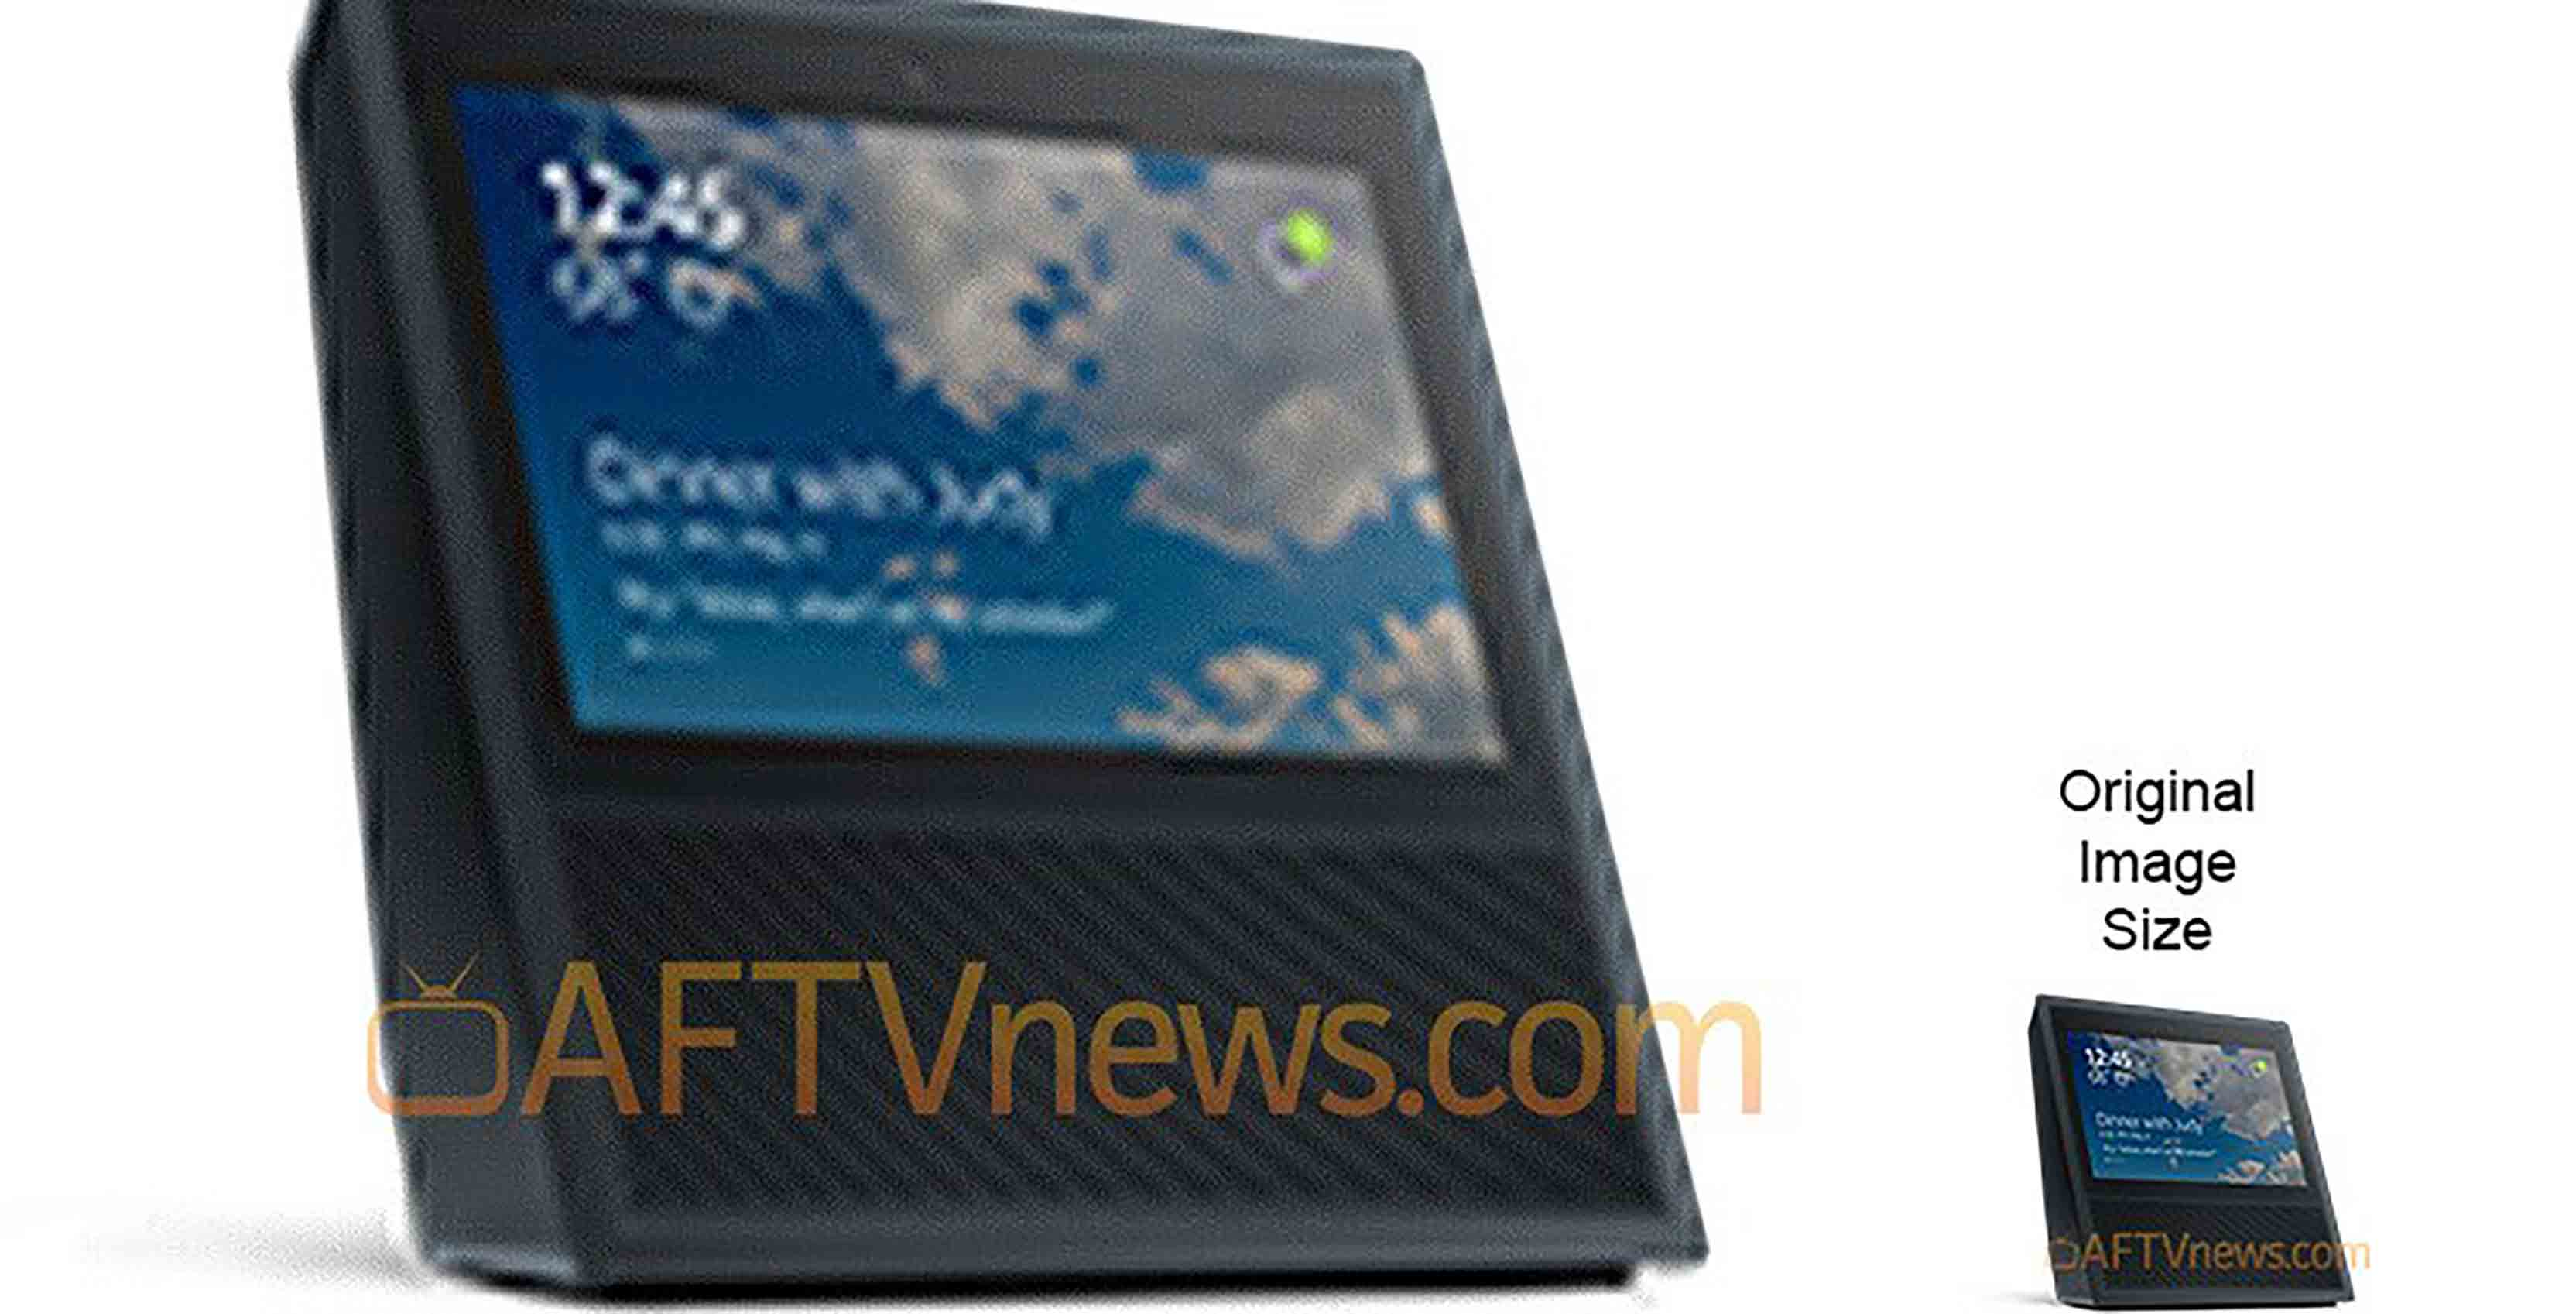 Leaked look at Amazon Echo with touchscreen from Aftvnews